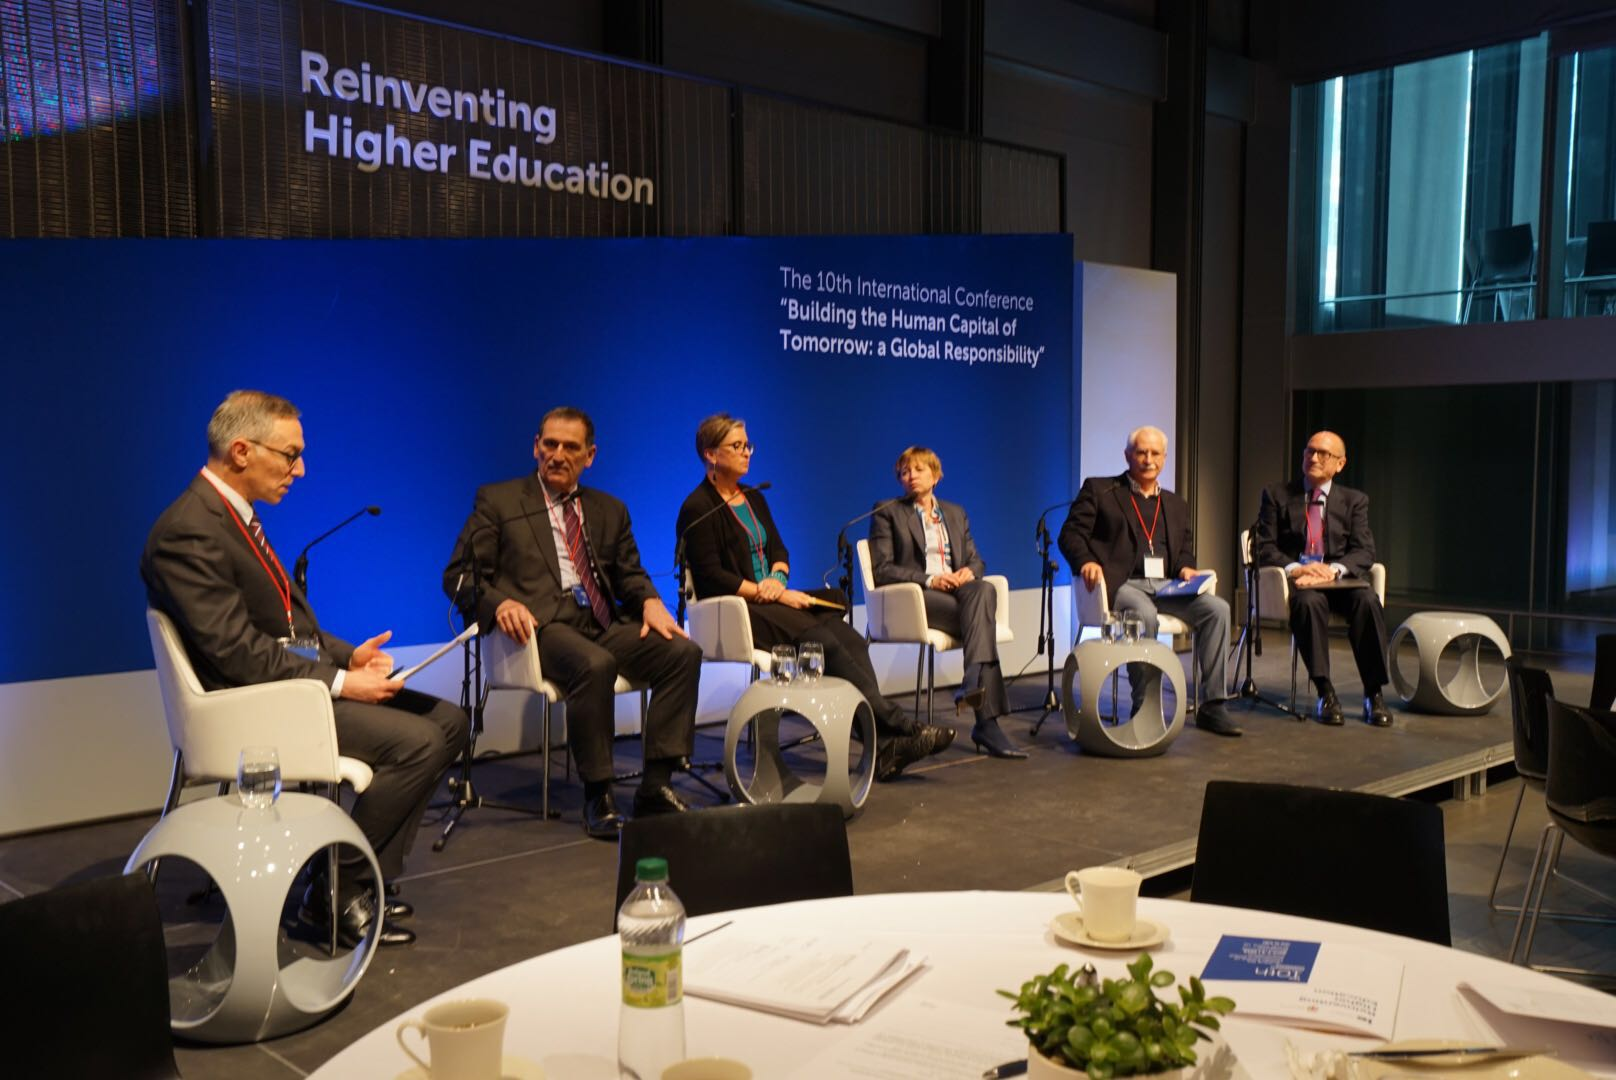 The Future of Work  - What are the Next Steps for Higher Educational Institutions?